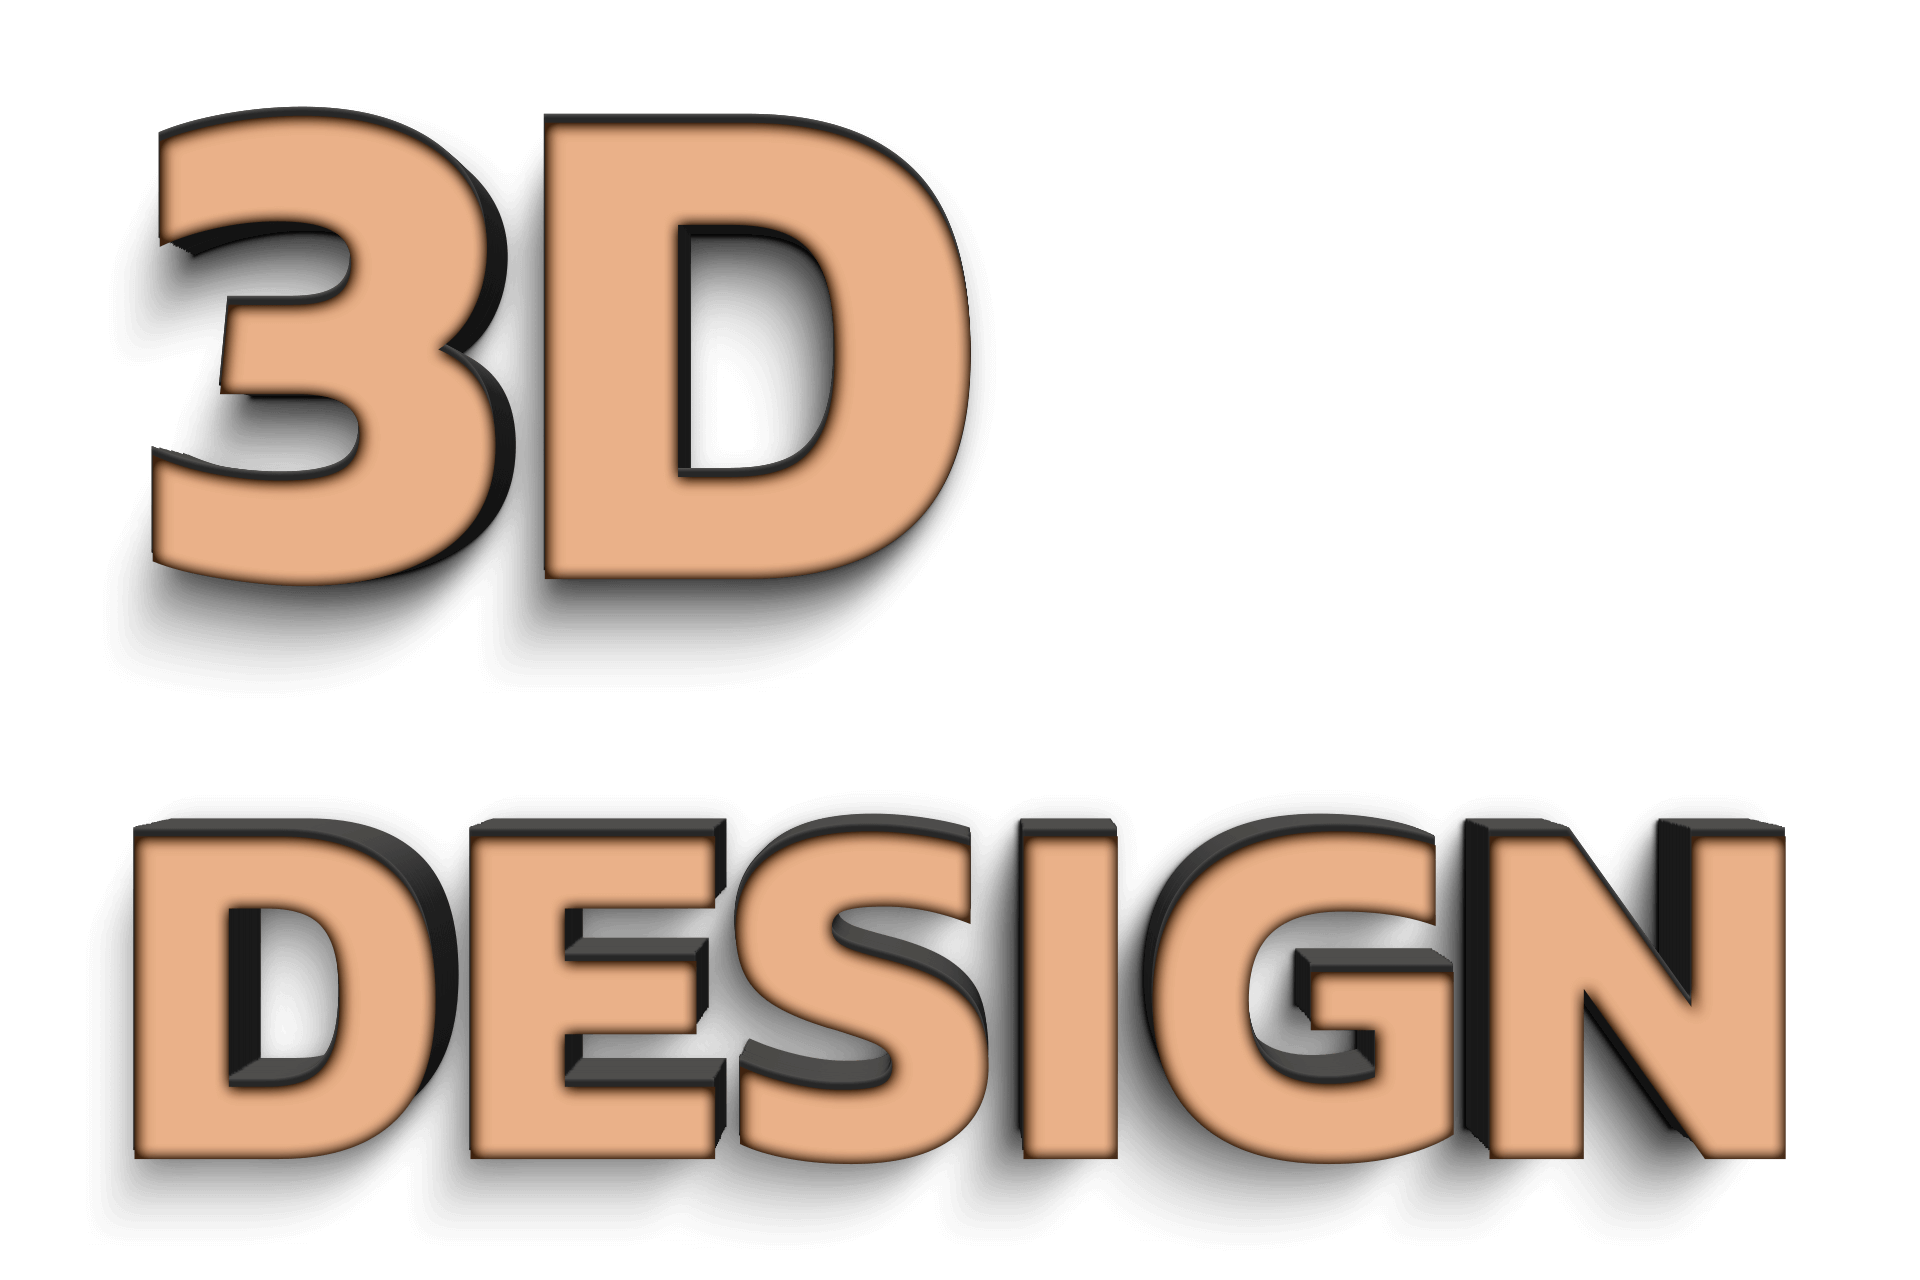 3D design by hightechbed